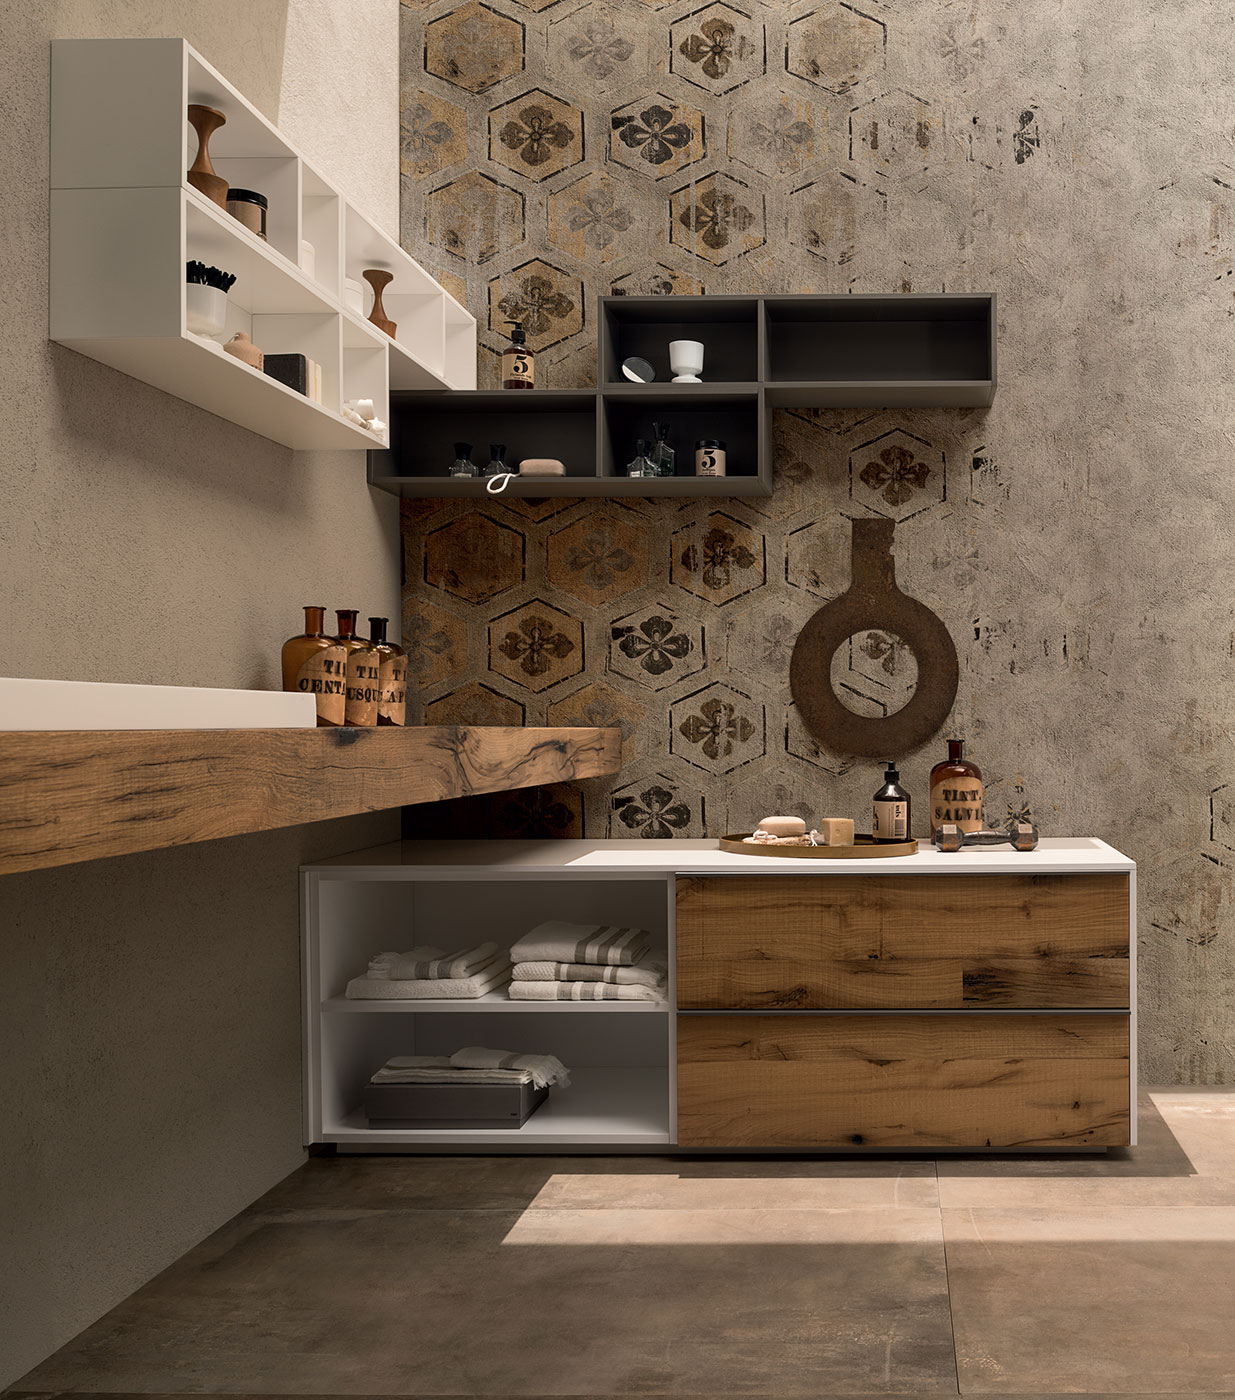 Awesome Rab Arredo Bagno Photos - Lepicentre.info - lepicentre.info